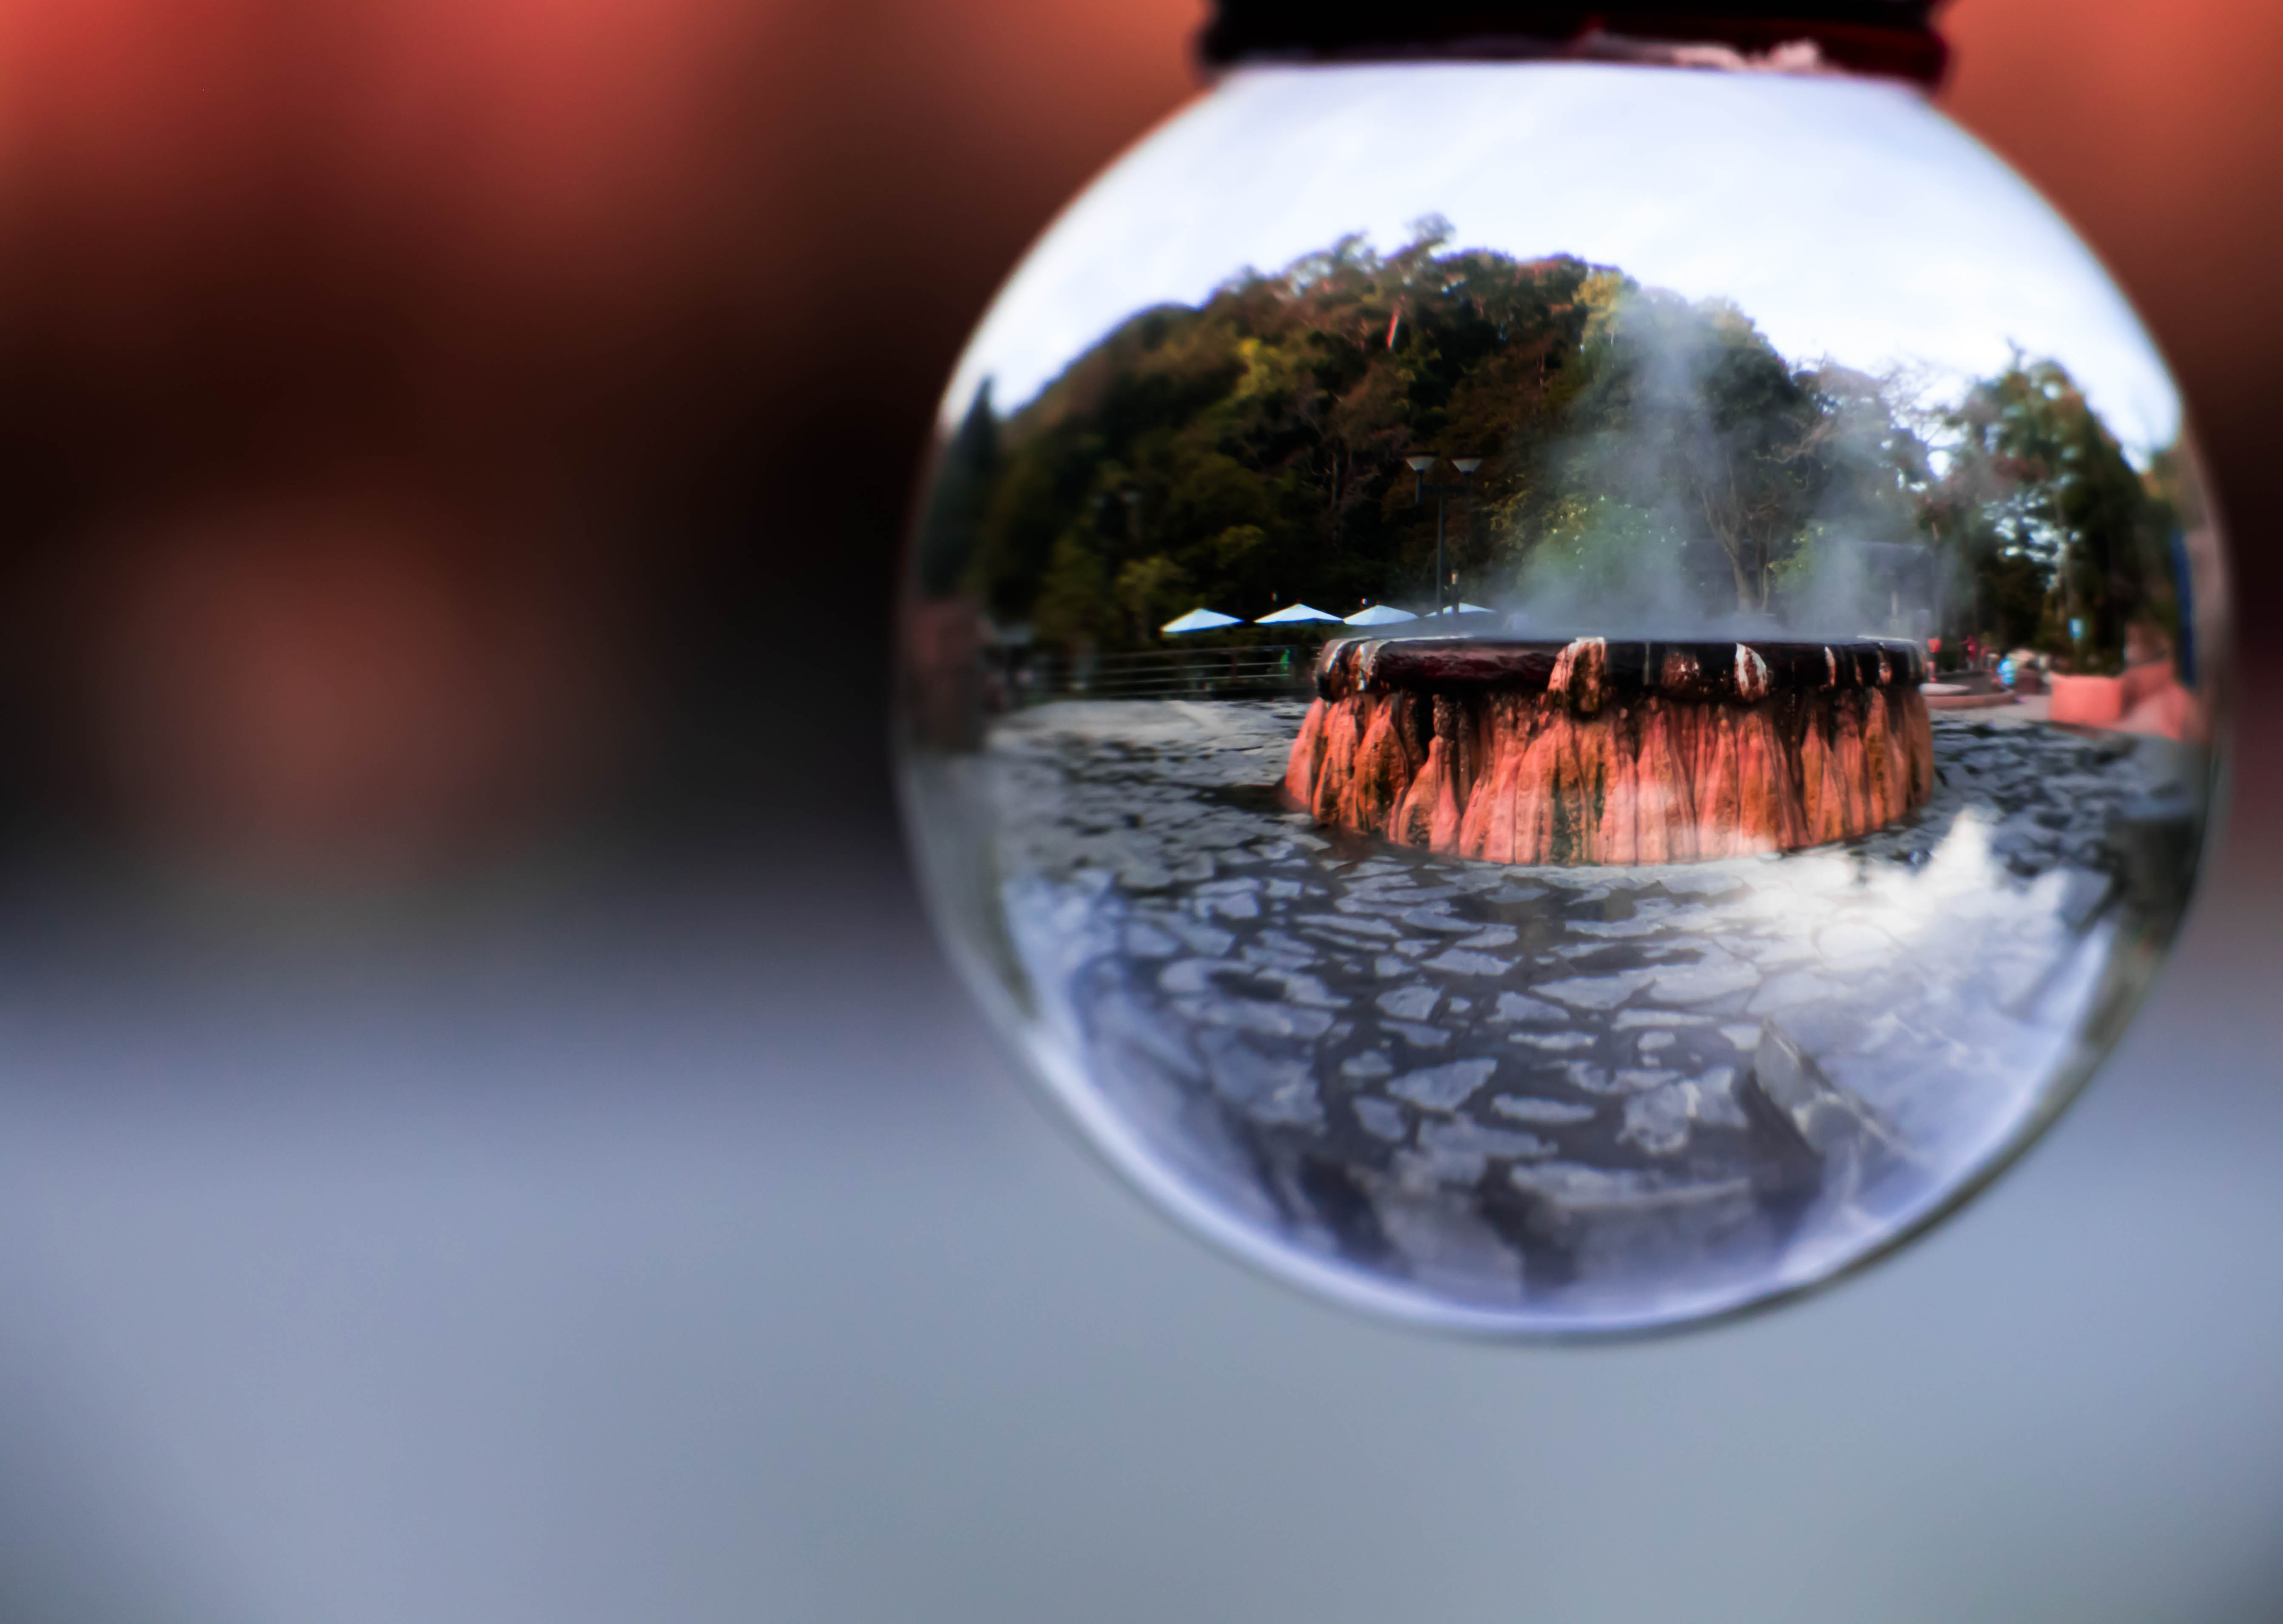 File:Mirror and reflection of Crystal ball Inside is Geyser Hot springs  Landmark At Raksawarin